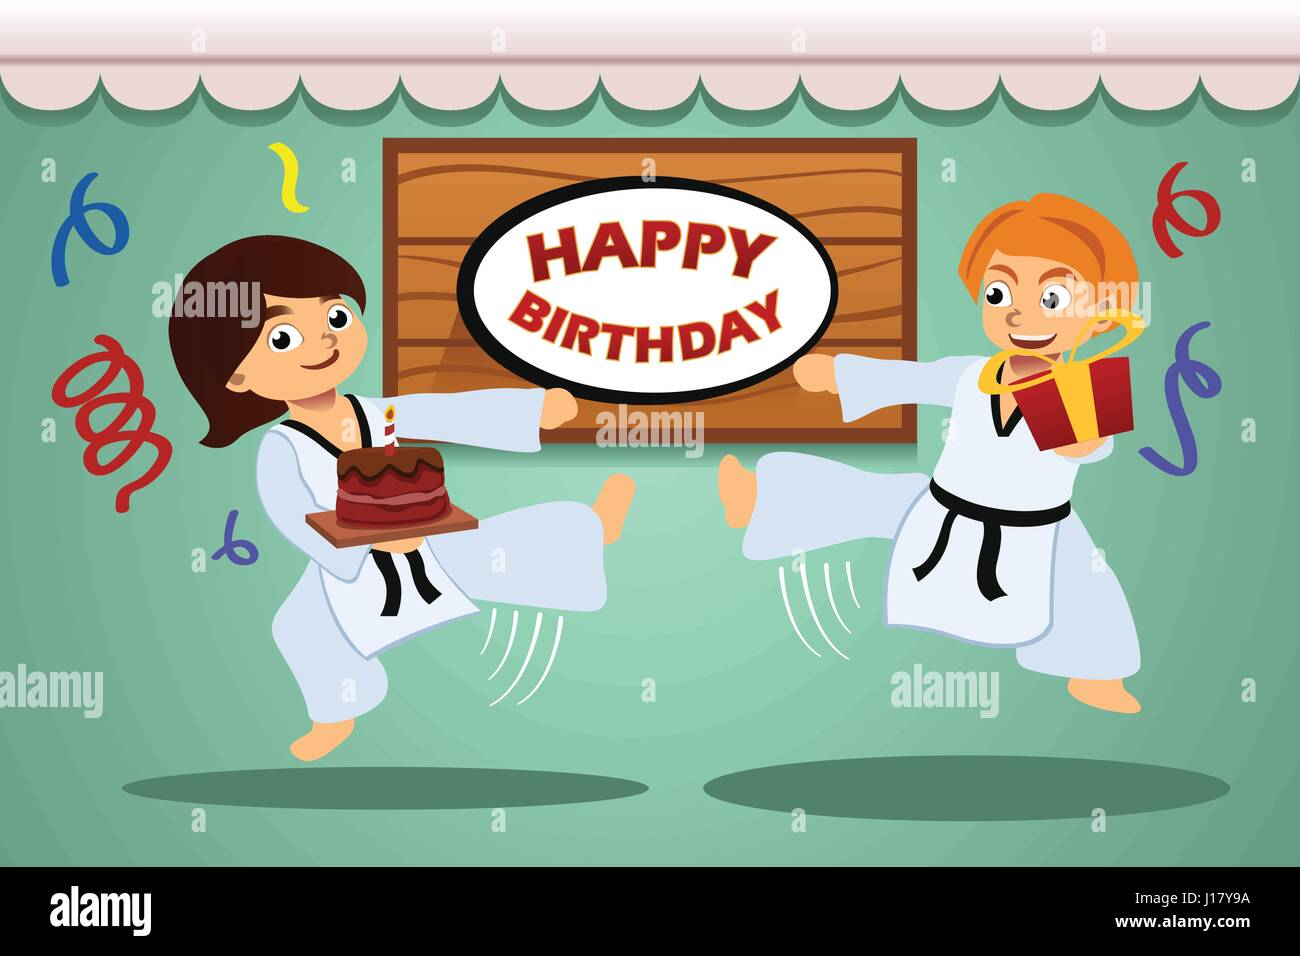 eine vektor illustration der kinder geburtstag party banner mit taekwondo thema vektor abbildung. Black Bedroom Furniture Sets. Home Design Ideas